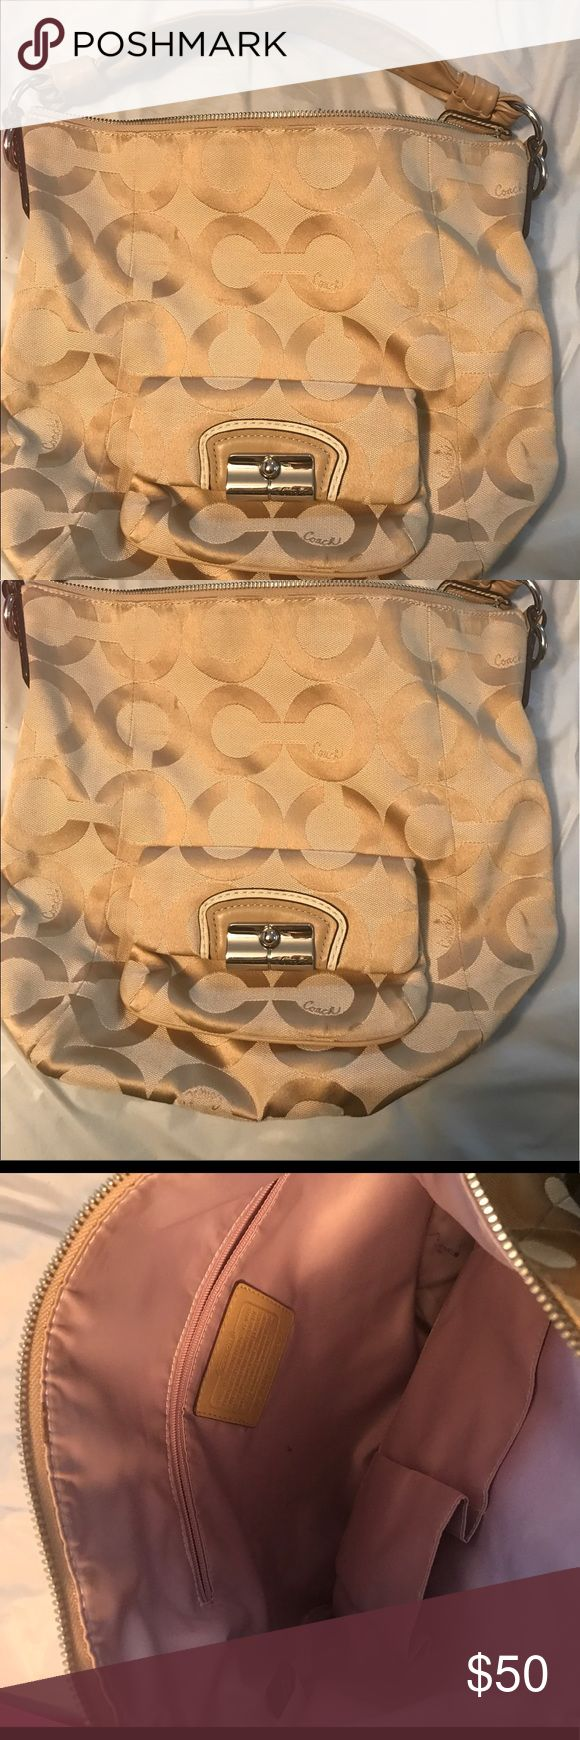 Coach shoulder bag Gently used.  Shoulder bag. Measures roughly 12X12.5. The only issue is that it has small pen marks (pictured).  The inner lining is purple! Coach Bags Shoulder Bags